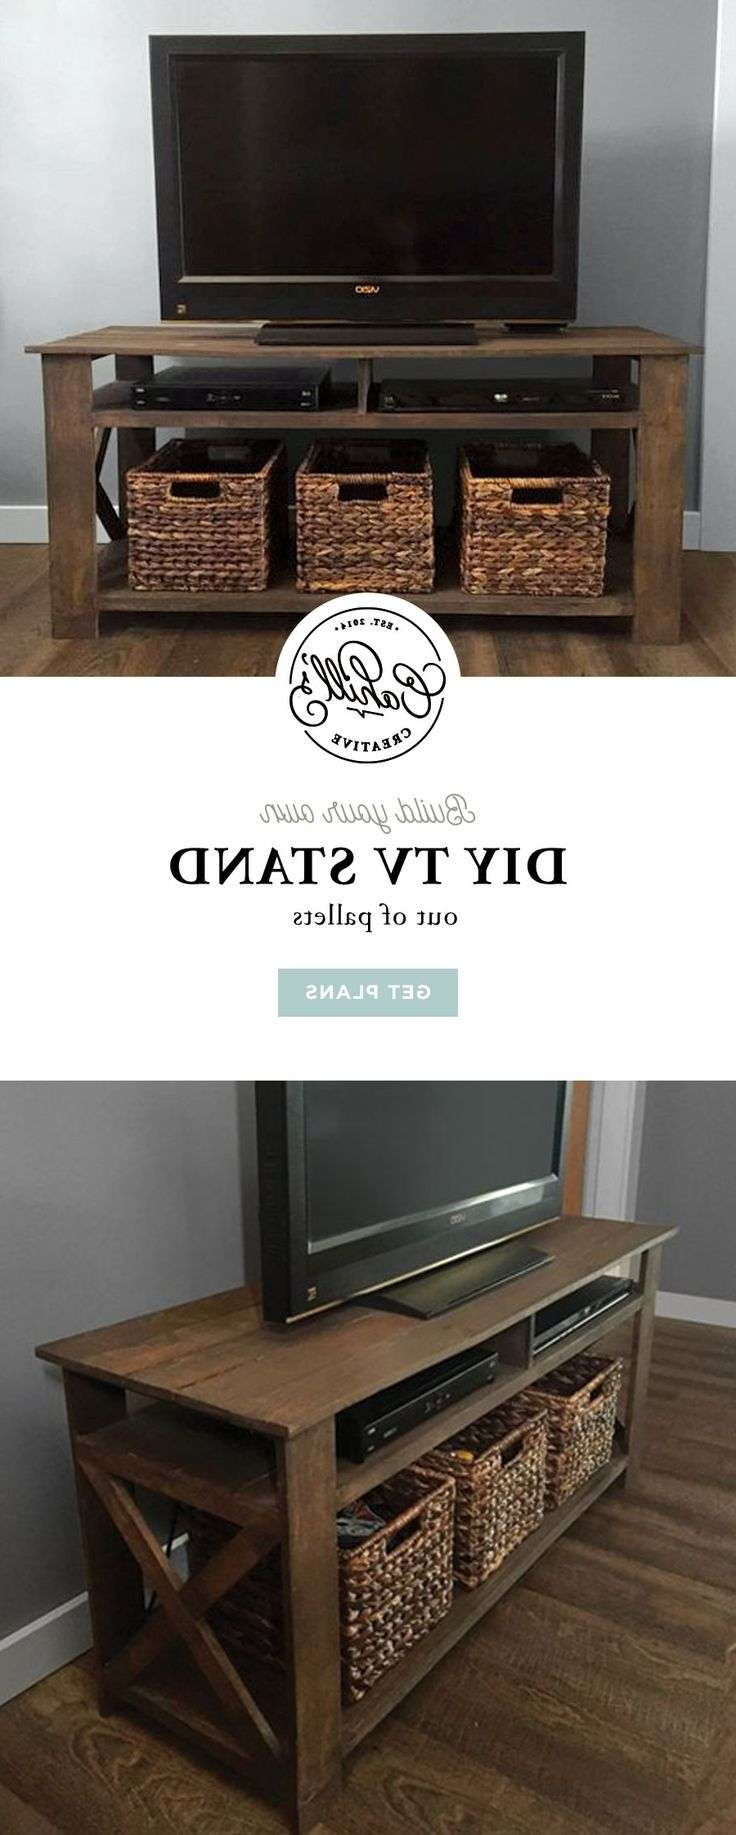 Best 25+ Pallet Tv Stands Ideas On Pinterest | Diy Tv Stand, Tv Pertaining To Single Shelf Tv Stands (View 15 of 15)